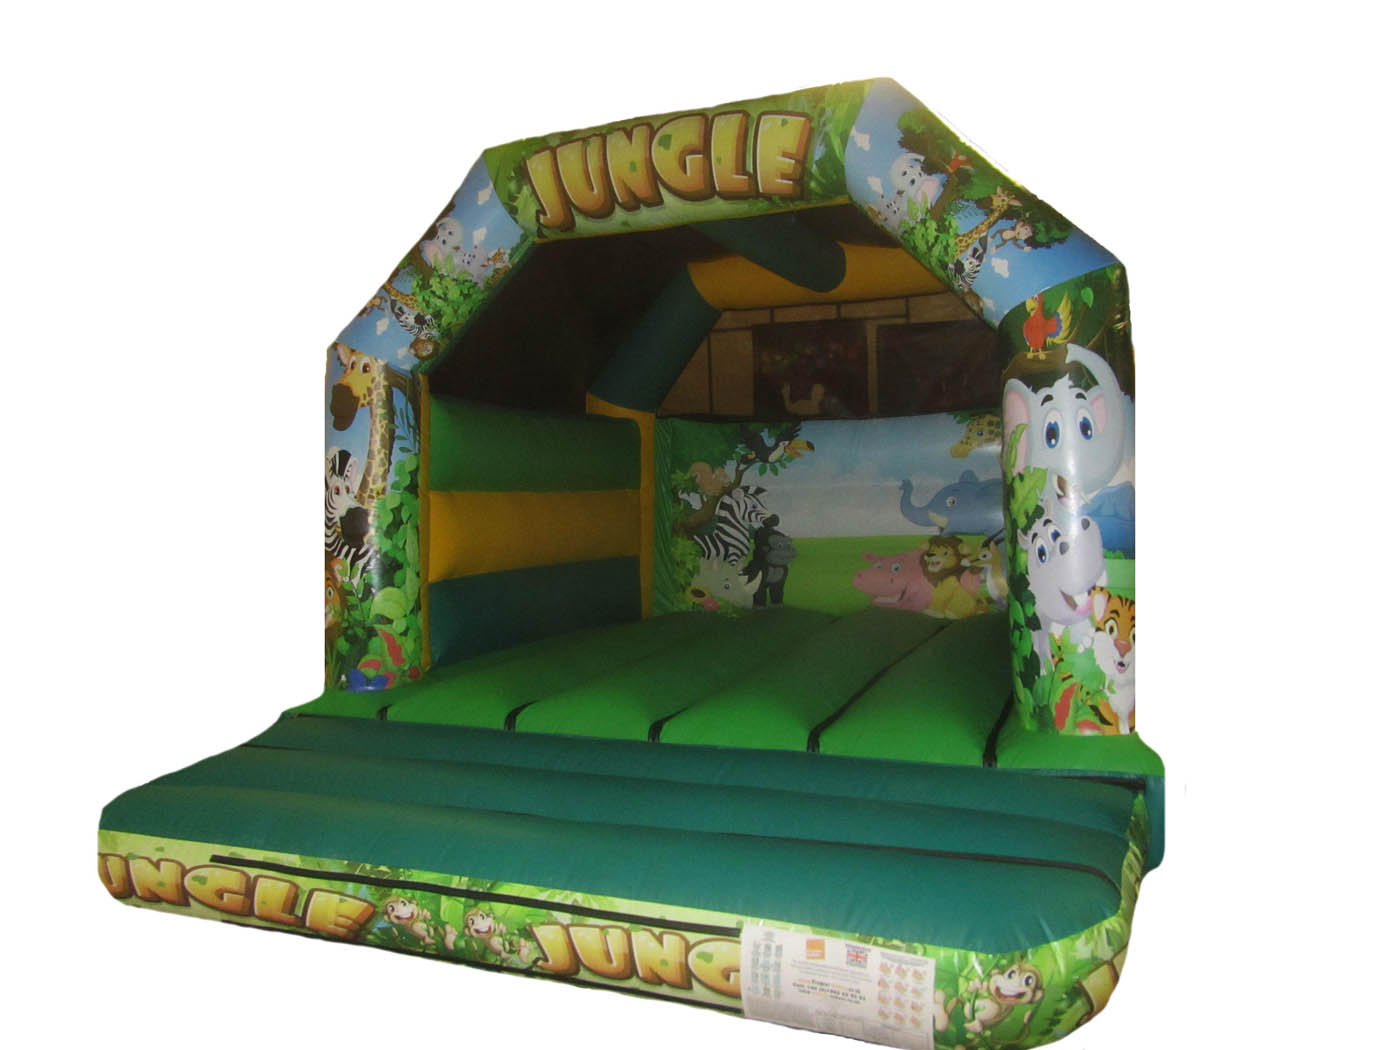 Commercial Bouncy Castle with Digitally Printed Jungle Artwork